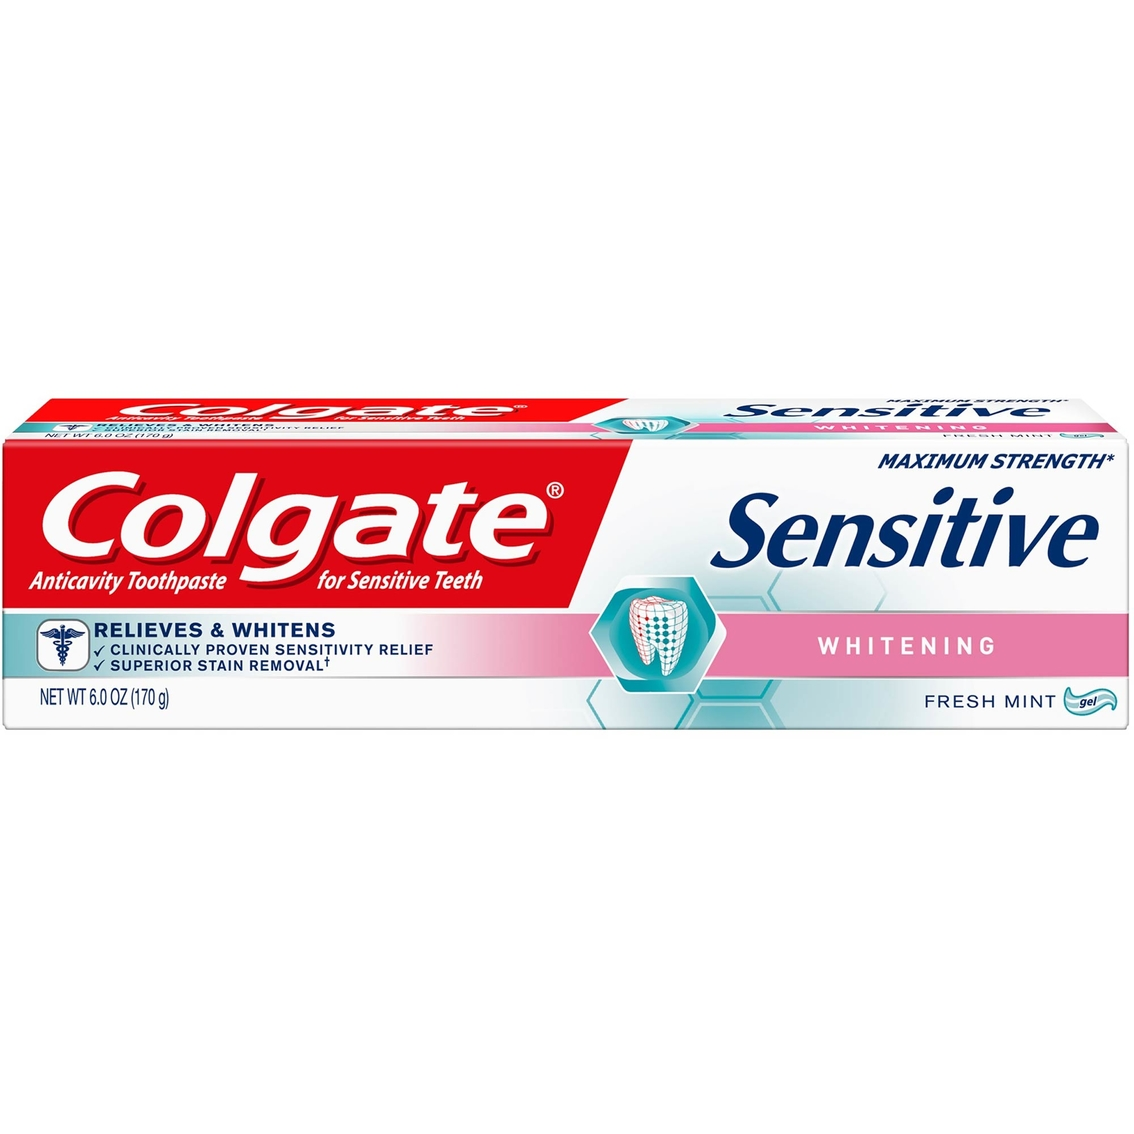 Colgate Sensitive Whitening Toothpaste Tooth Paste Beauty